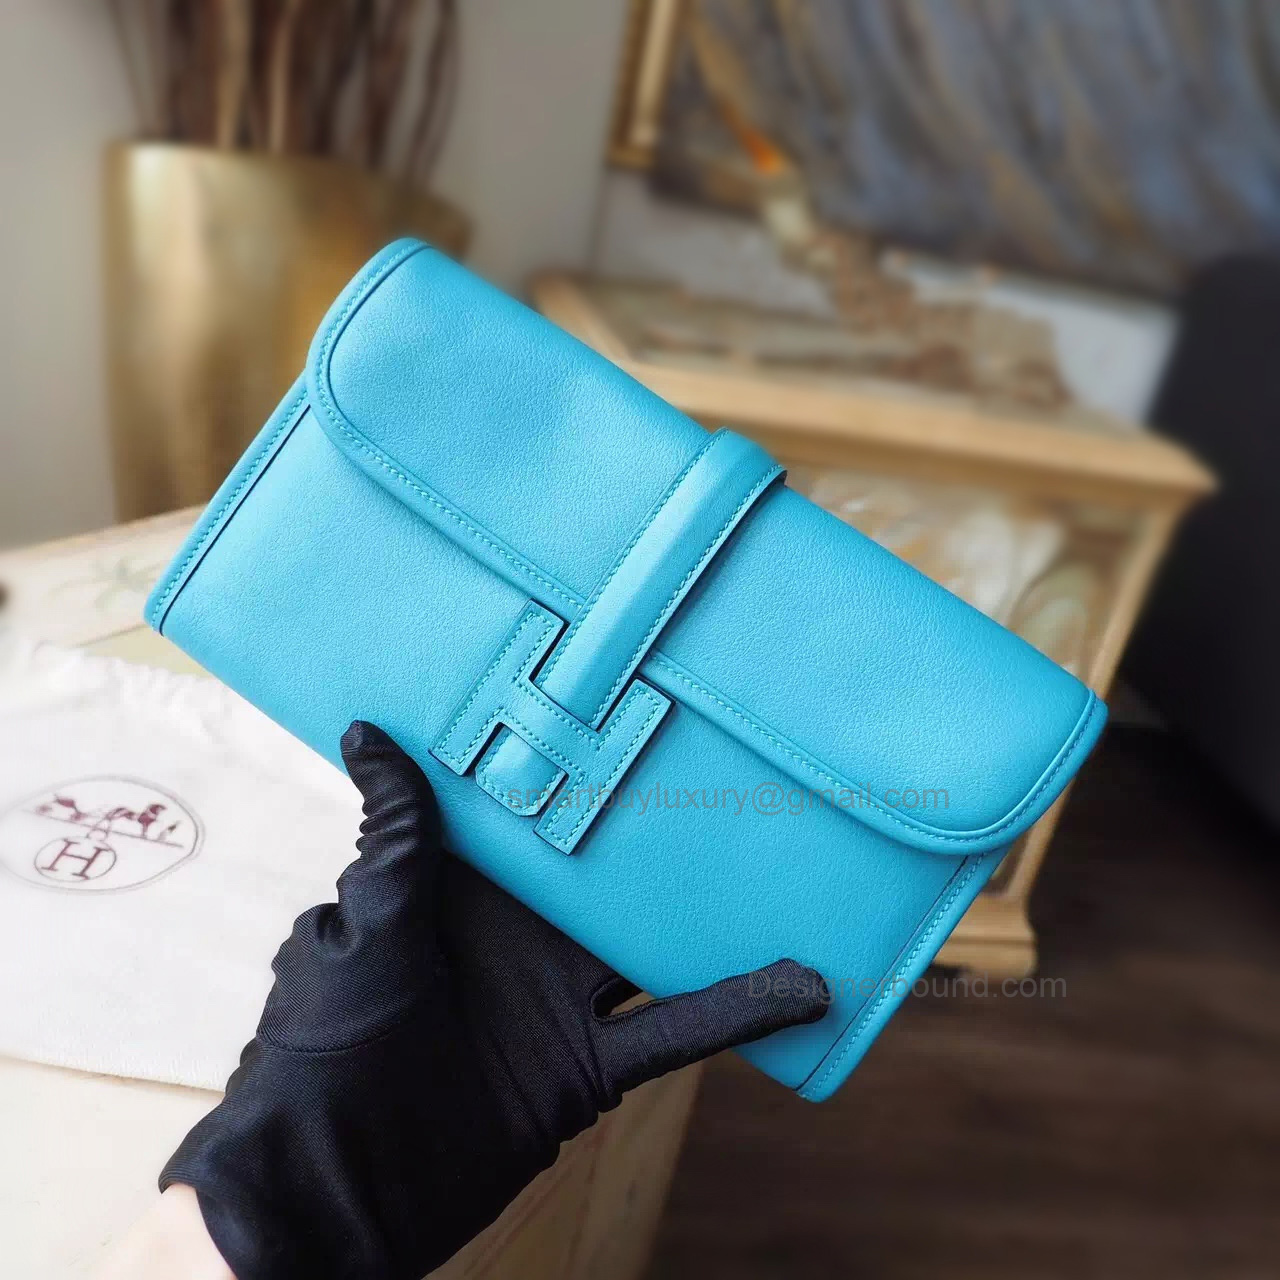 Copy Hermes Jige Duo Mini Clutch Handmade in Turquoise Blue 7b Swift Calfskin